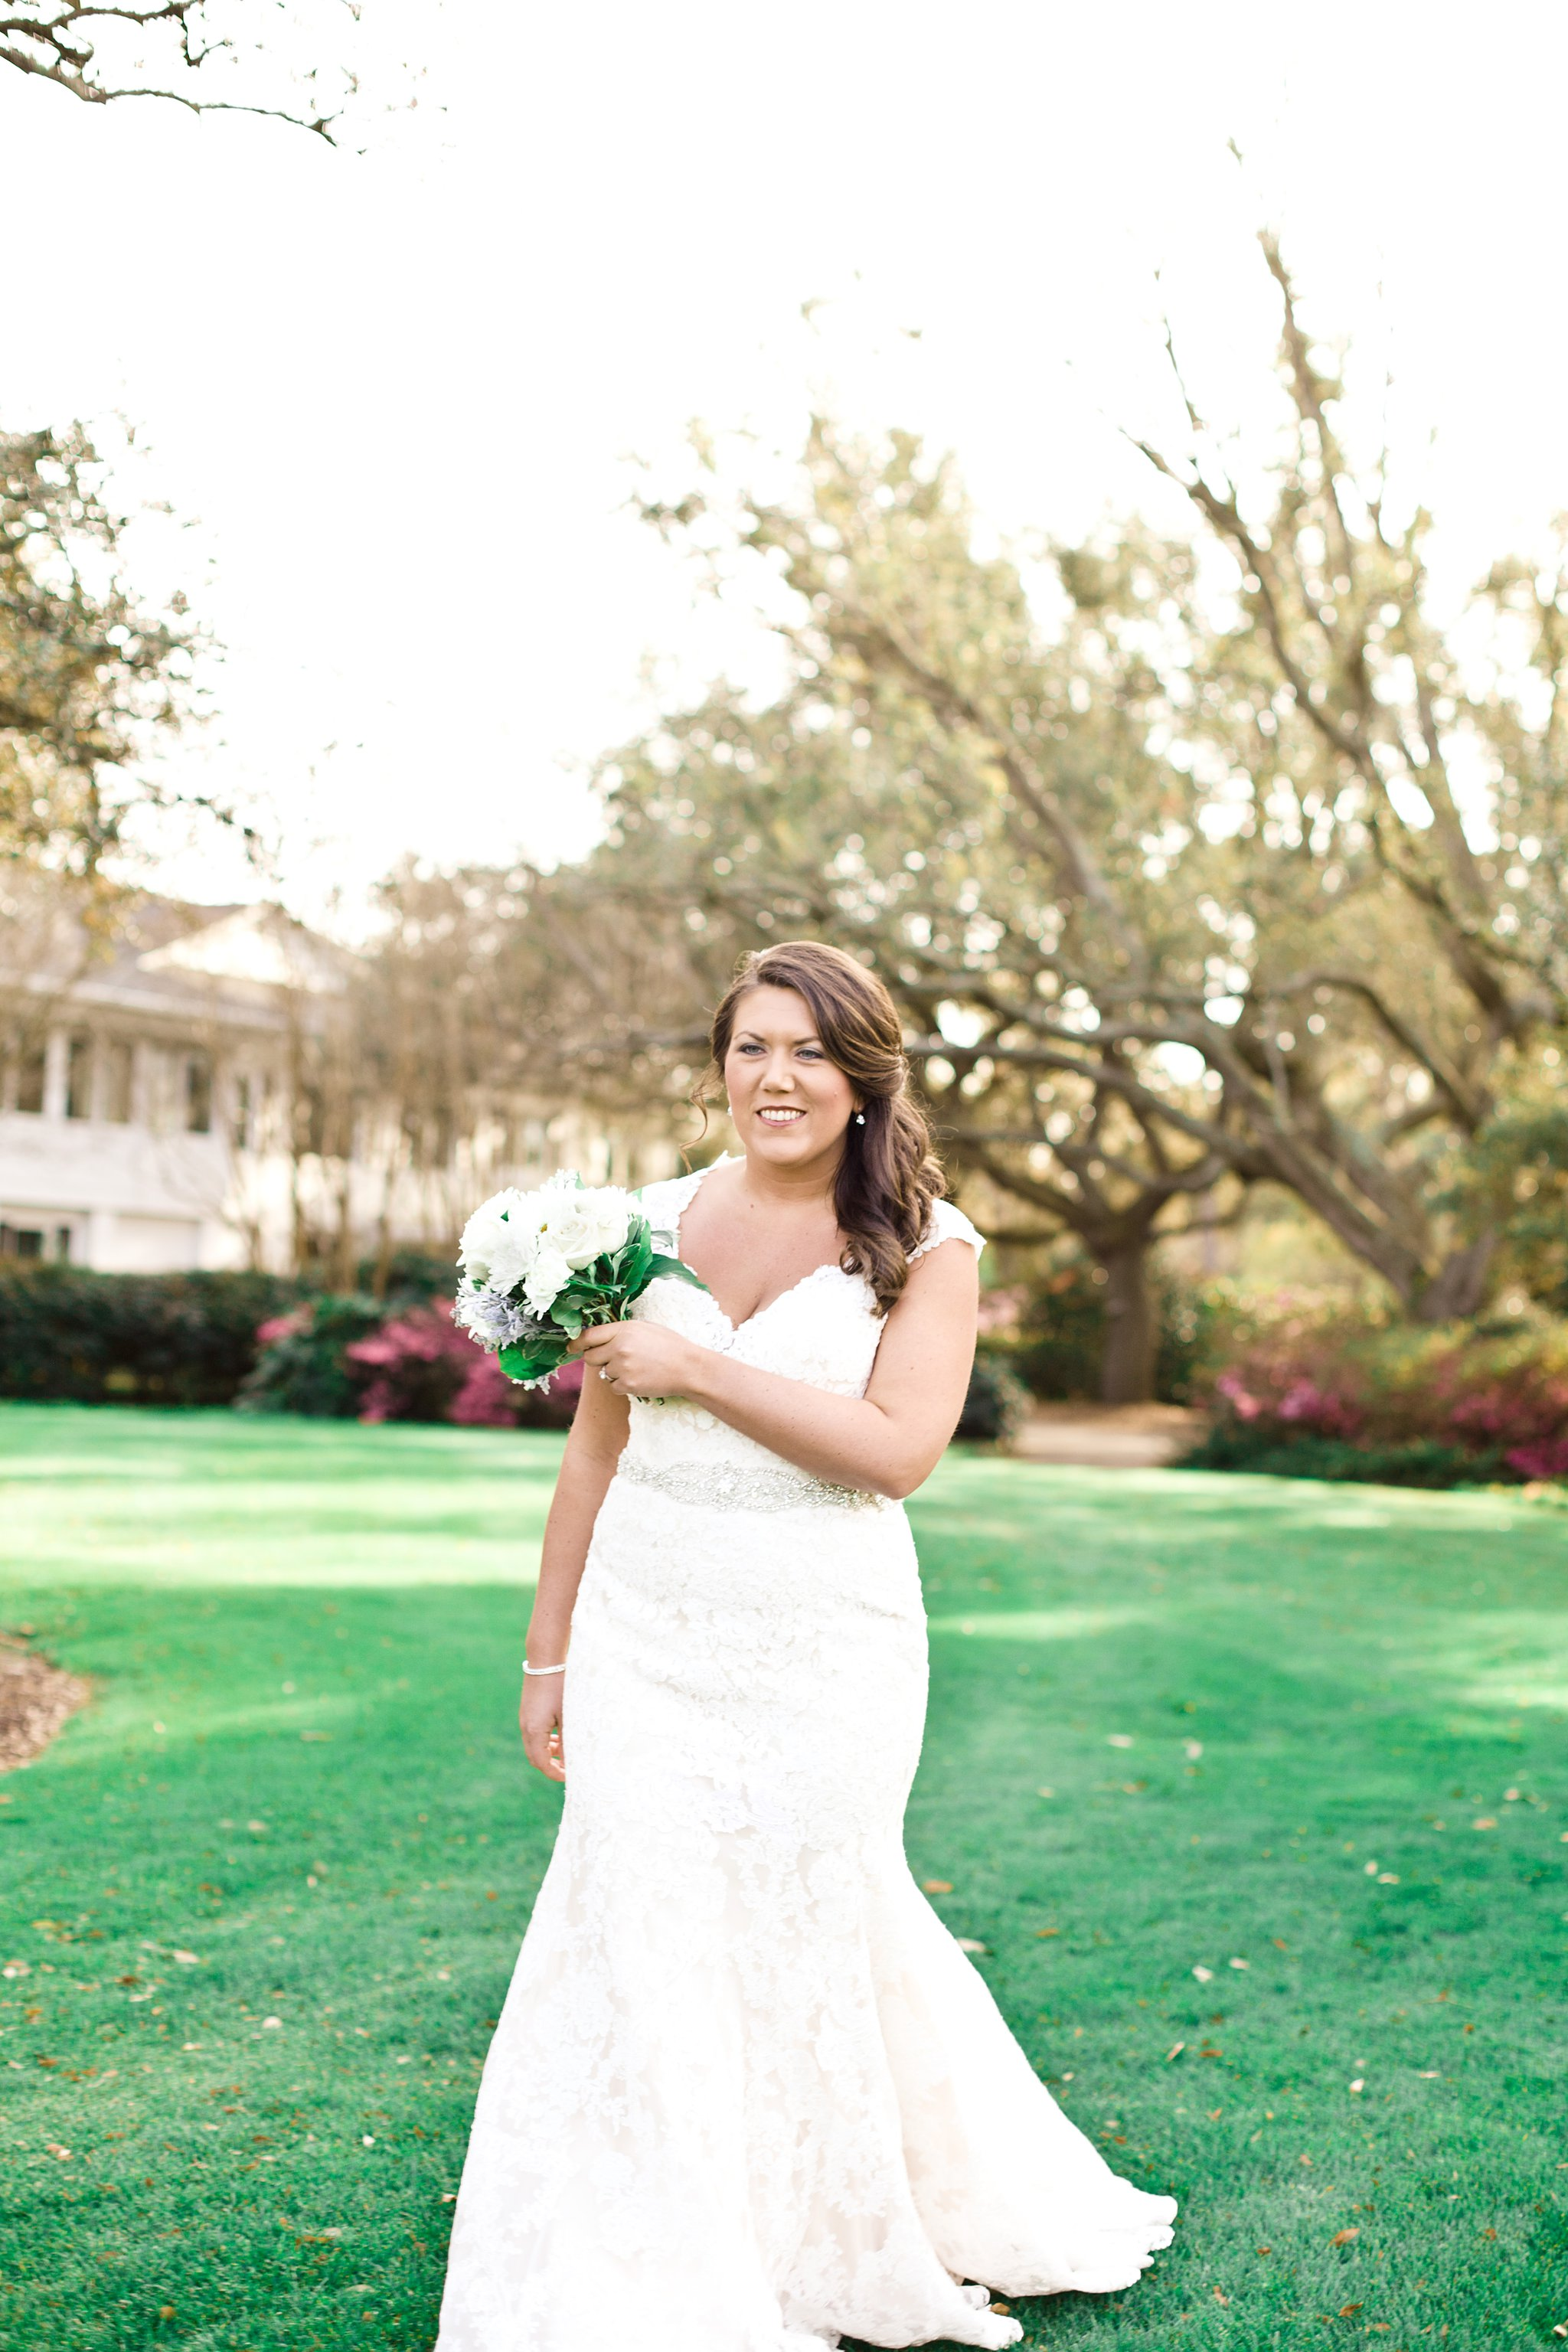 litchfield-golf-country-club-bridal-session-pawleys-island-sc-photos_0107.jpg